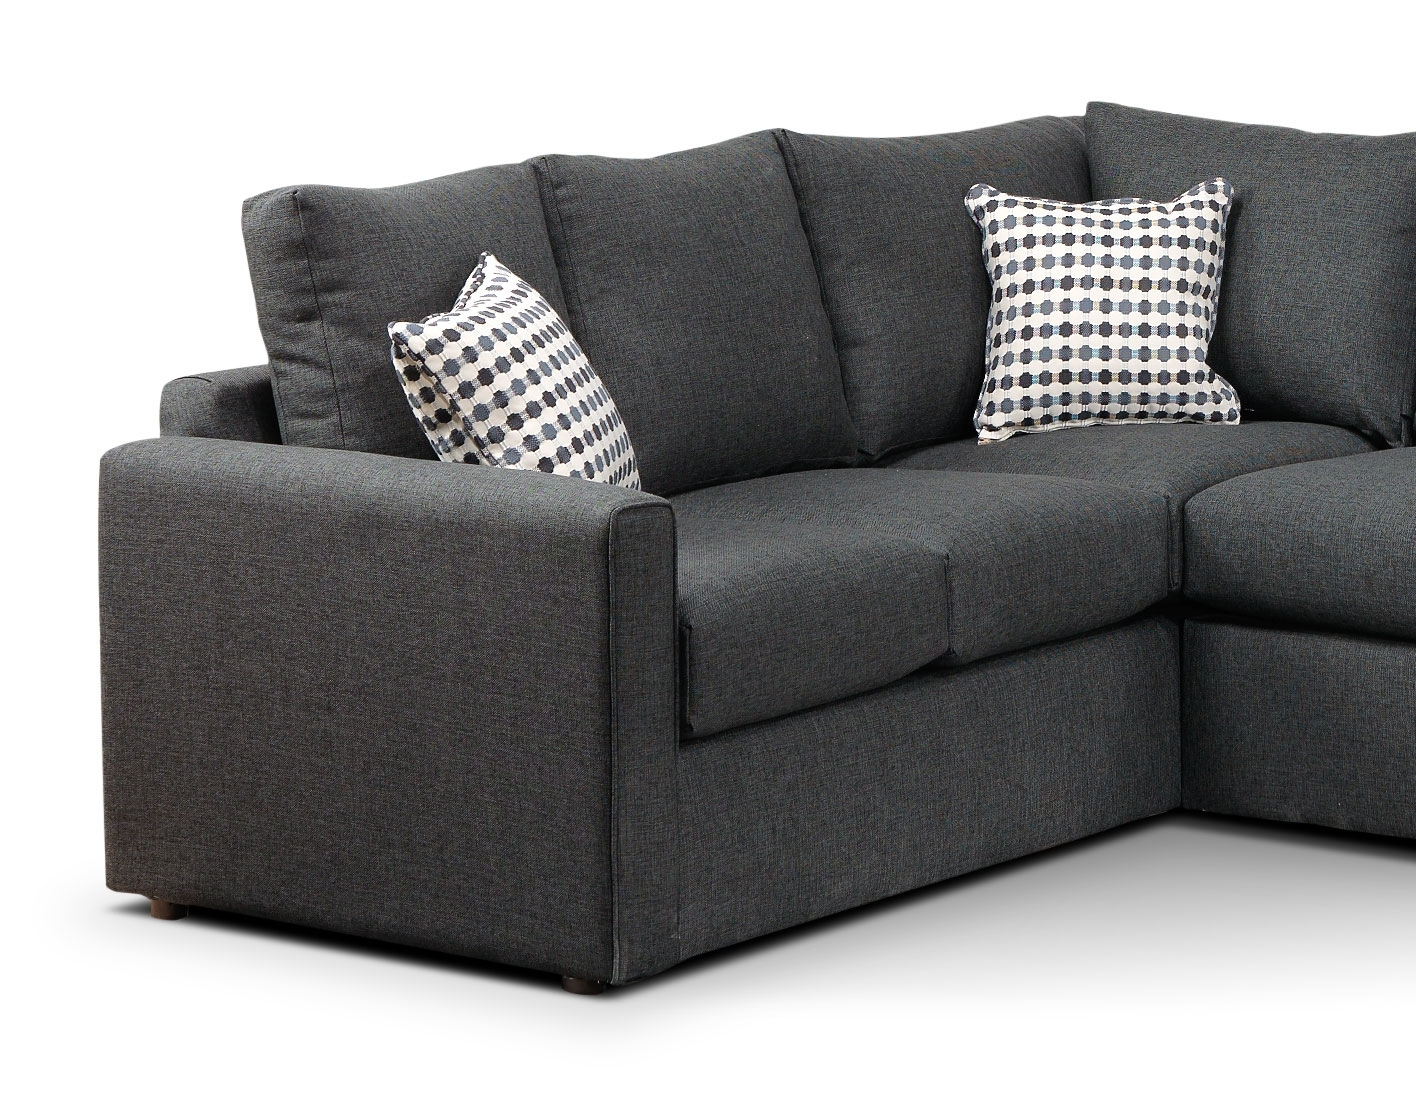 Athina 2 Piece Sectional With Left Facing Queen Sofa Bed With Trendy Vancouver Bc Canada Sectional Sofas (View 3 of 20)